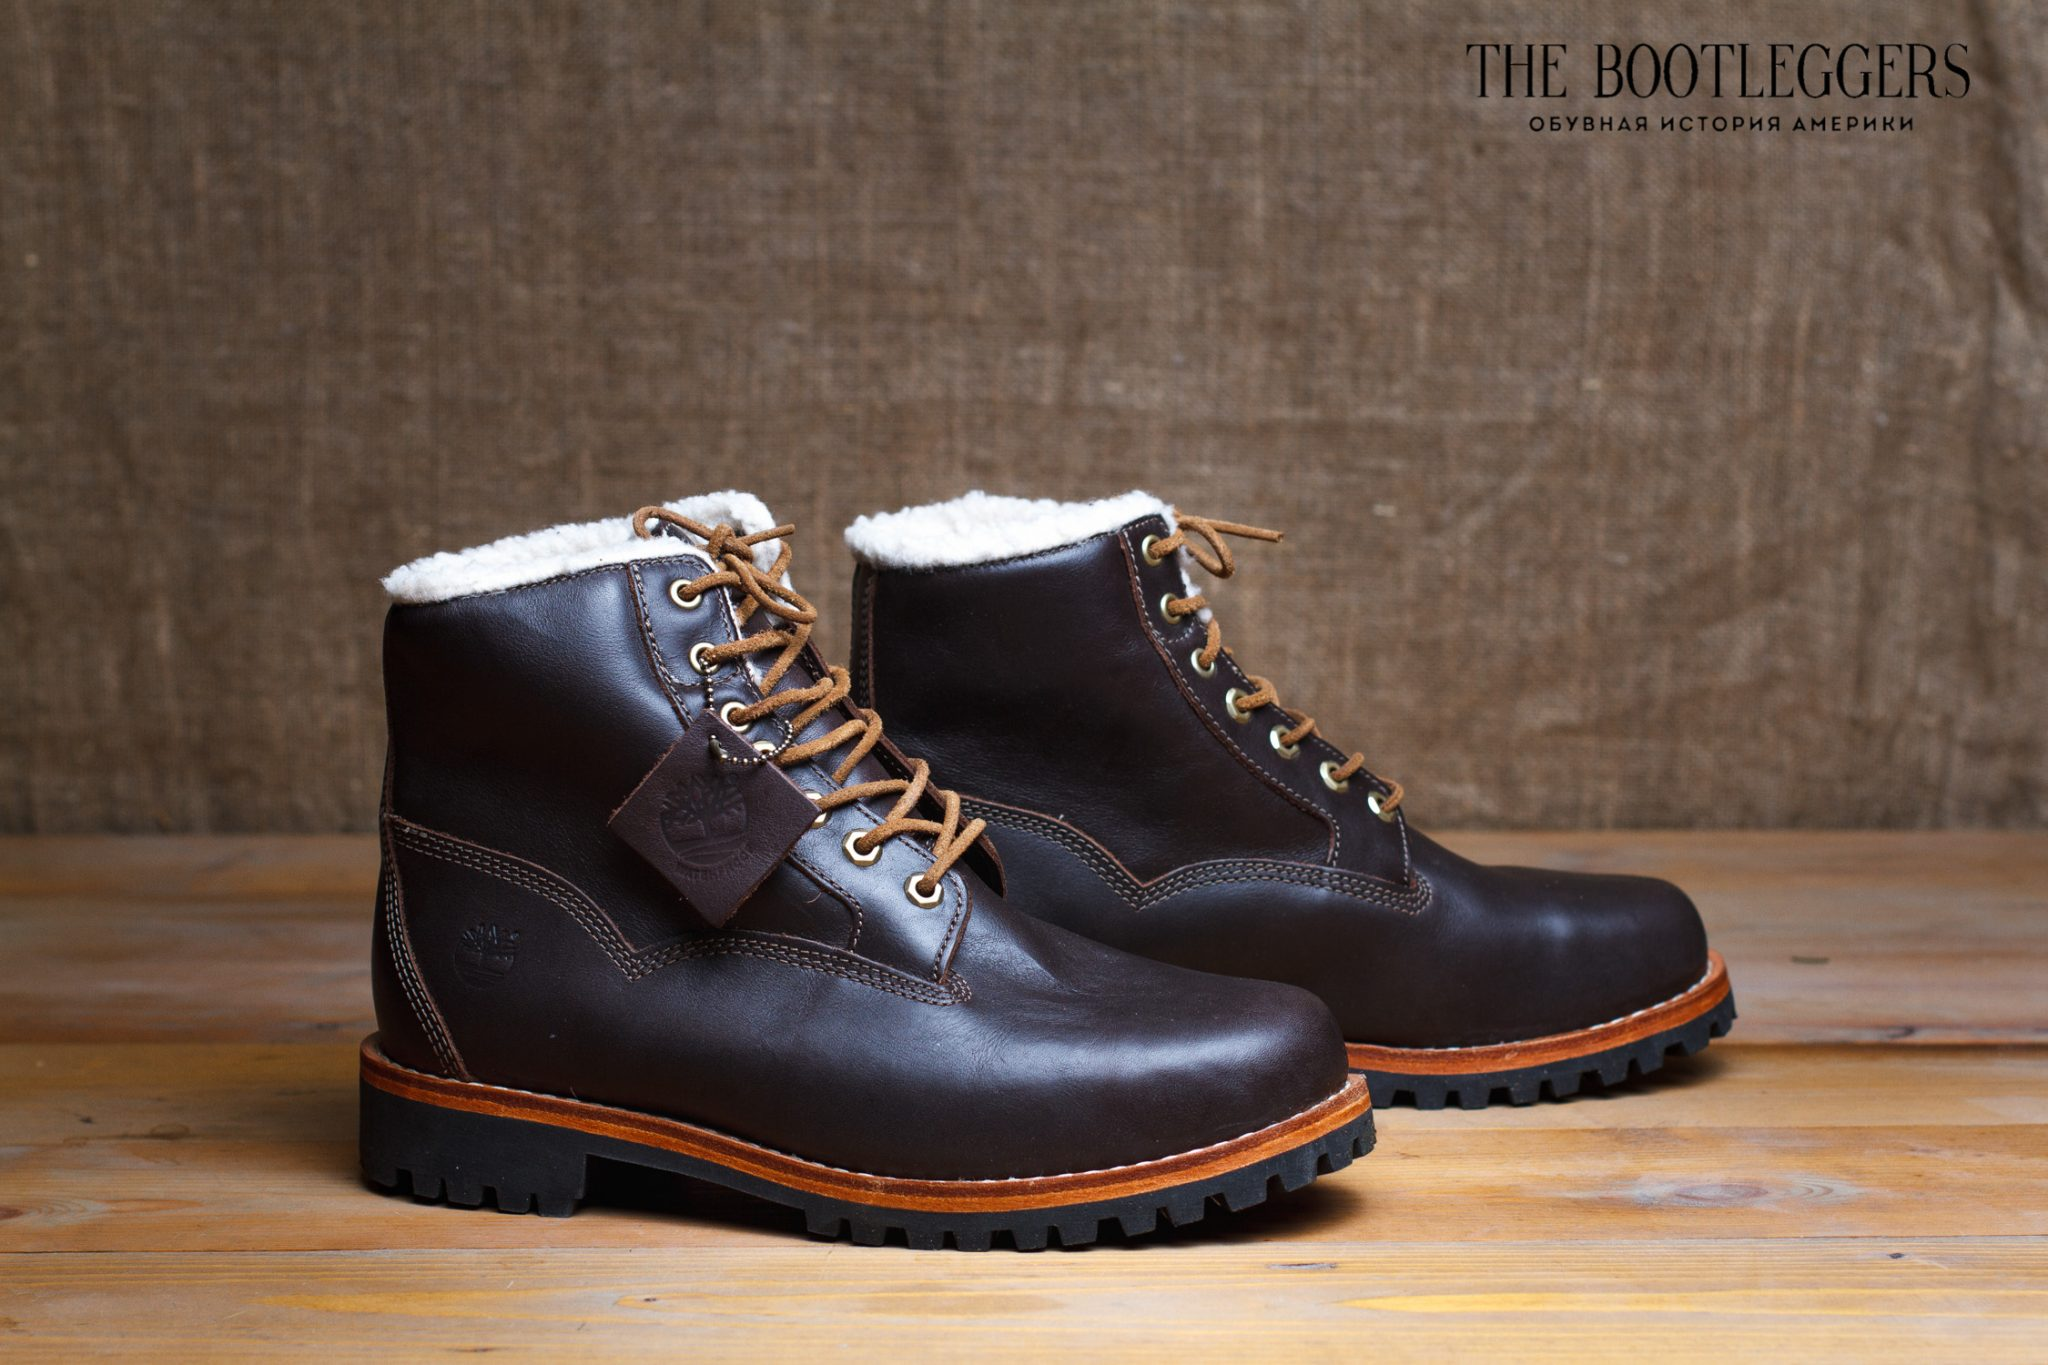 5b7f2a663a49 Мужские ботинки Timbеrlаnd Heritage Brown Leather 6 inch 6555A   The ...